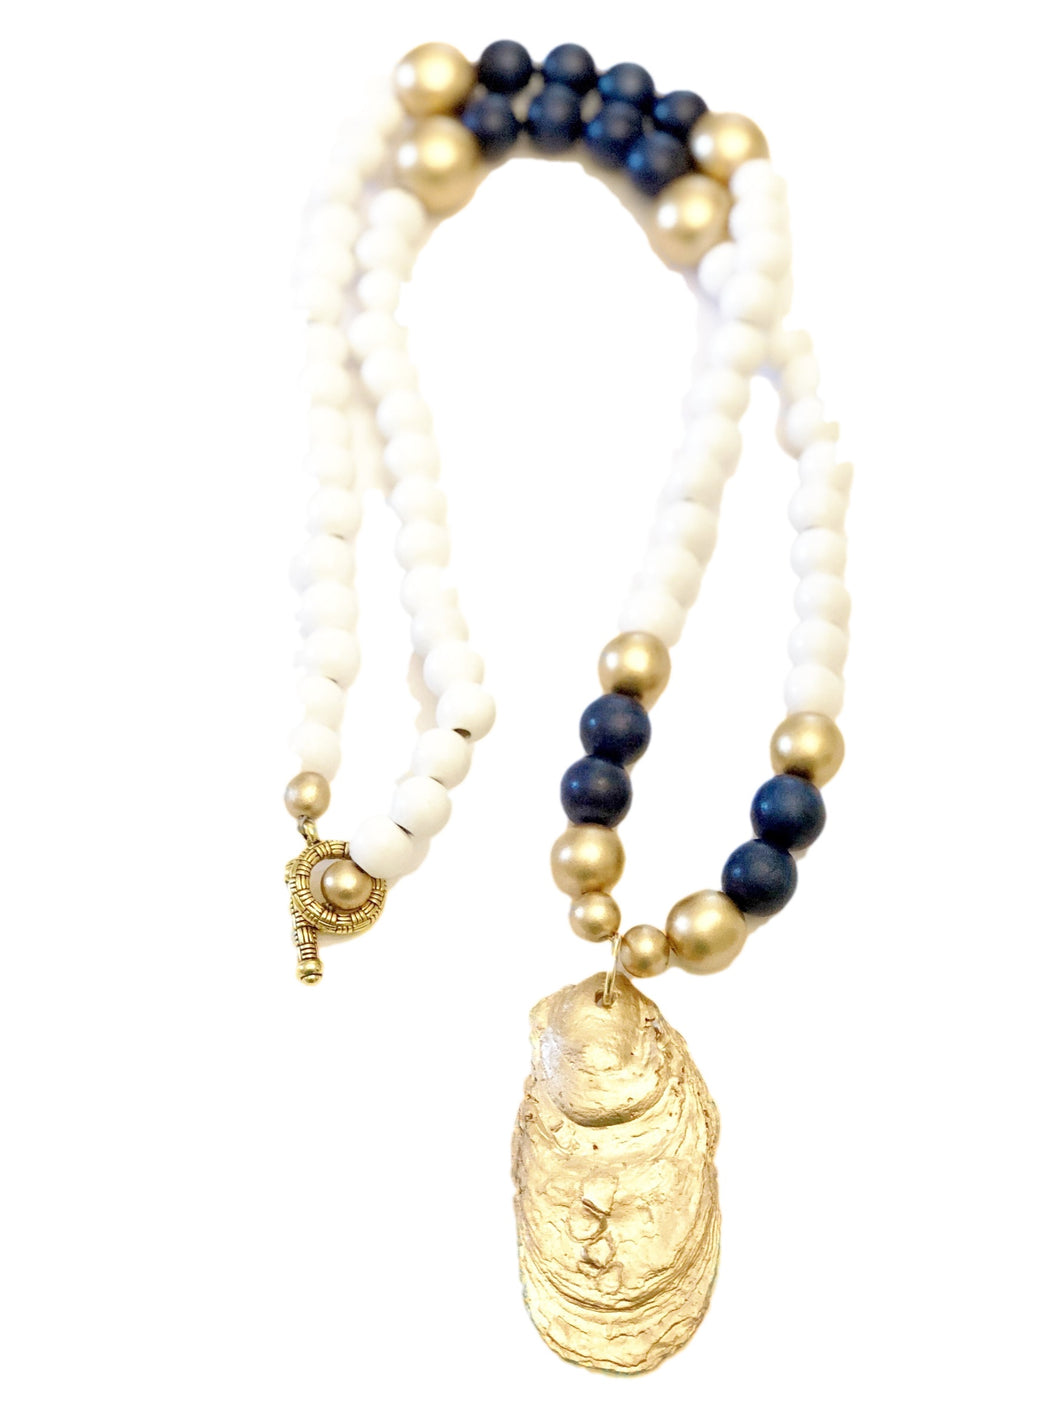 Savannah Summer Oyster Necklace